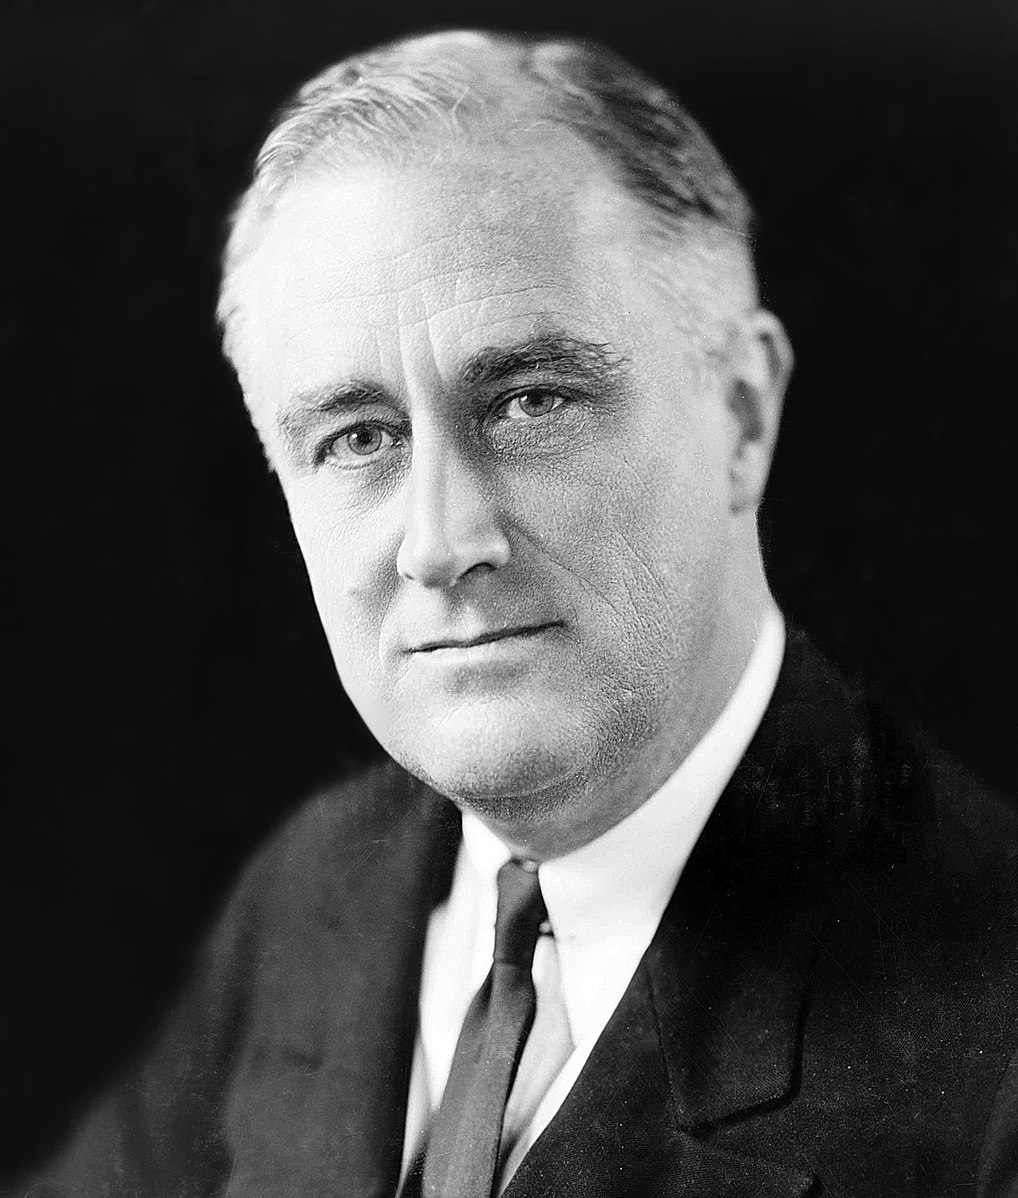 On March 11, 1941, President Franklin D. Roosevelt signed the Lend Lease Act, giving America the authorization to lend or lease supplies, weapons, ships and vehicles to countries deemed necessary for the defense of the United States. (Public Domain/Wikimedia Commons)